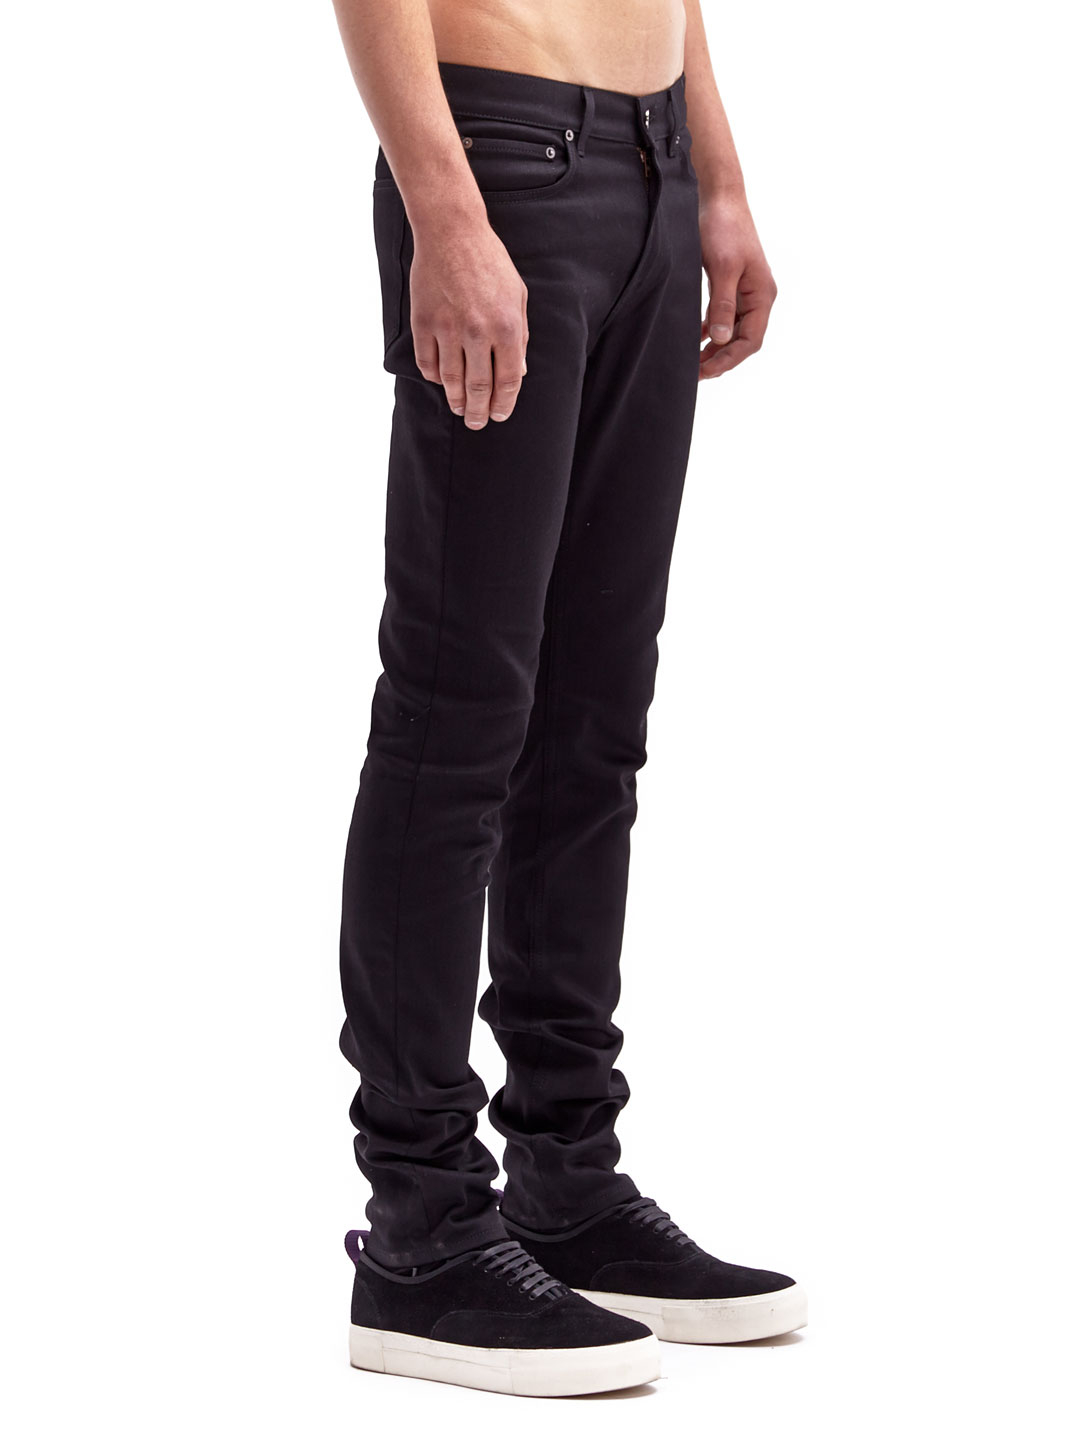 lyst acne studios ace cash jeans in black for men. Black Bedroom Furniture Sets. Home Design Ideas